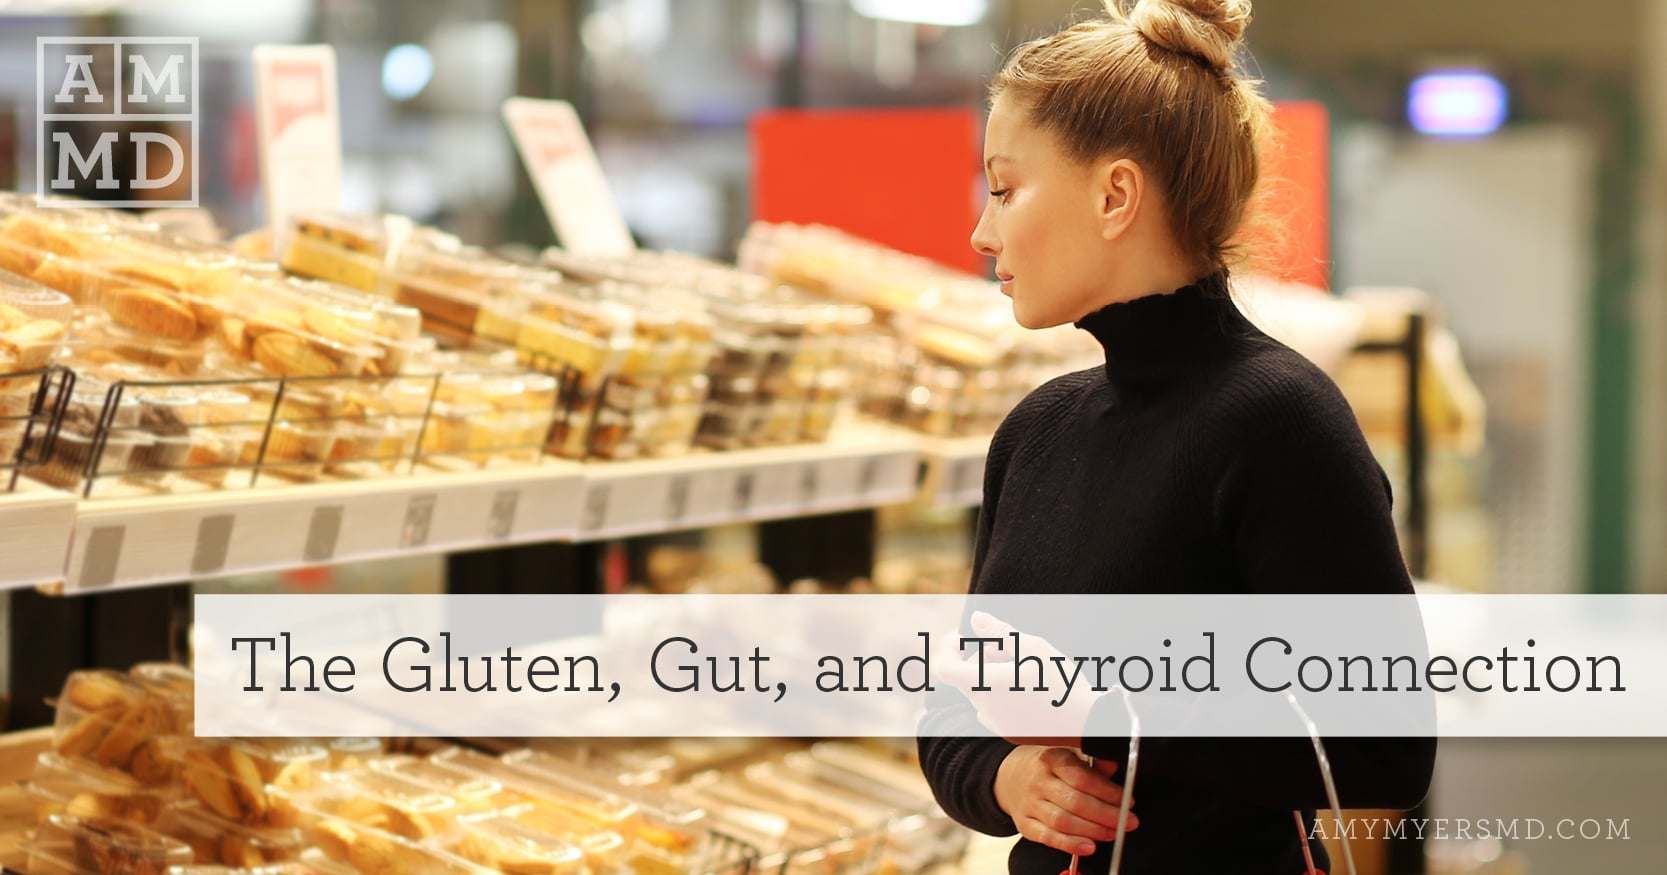 The Gluten, Gut, and Thyroid Connection - Woman Shopping - Featured Image - Amy Myers MD